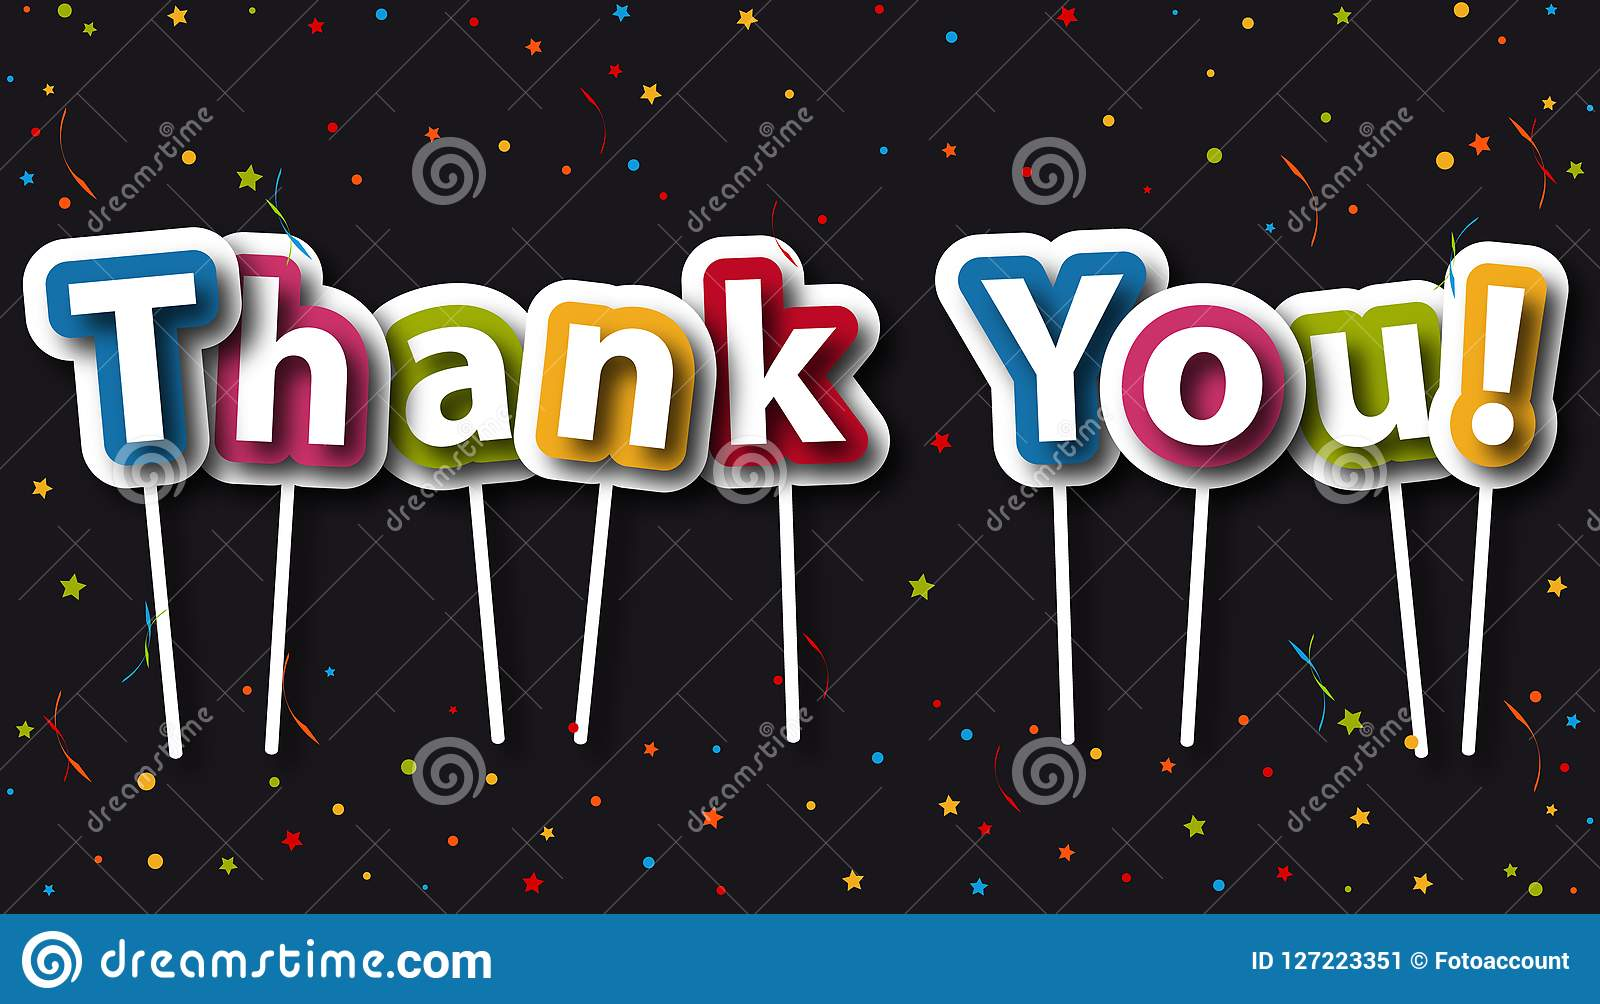 Thank You Background With Confetti And Stars - Colorful Vector Illustration - Isolated On Black Background